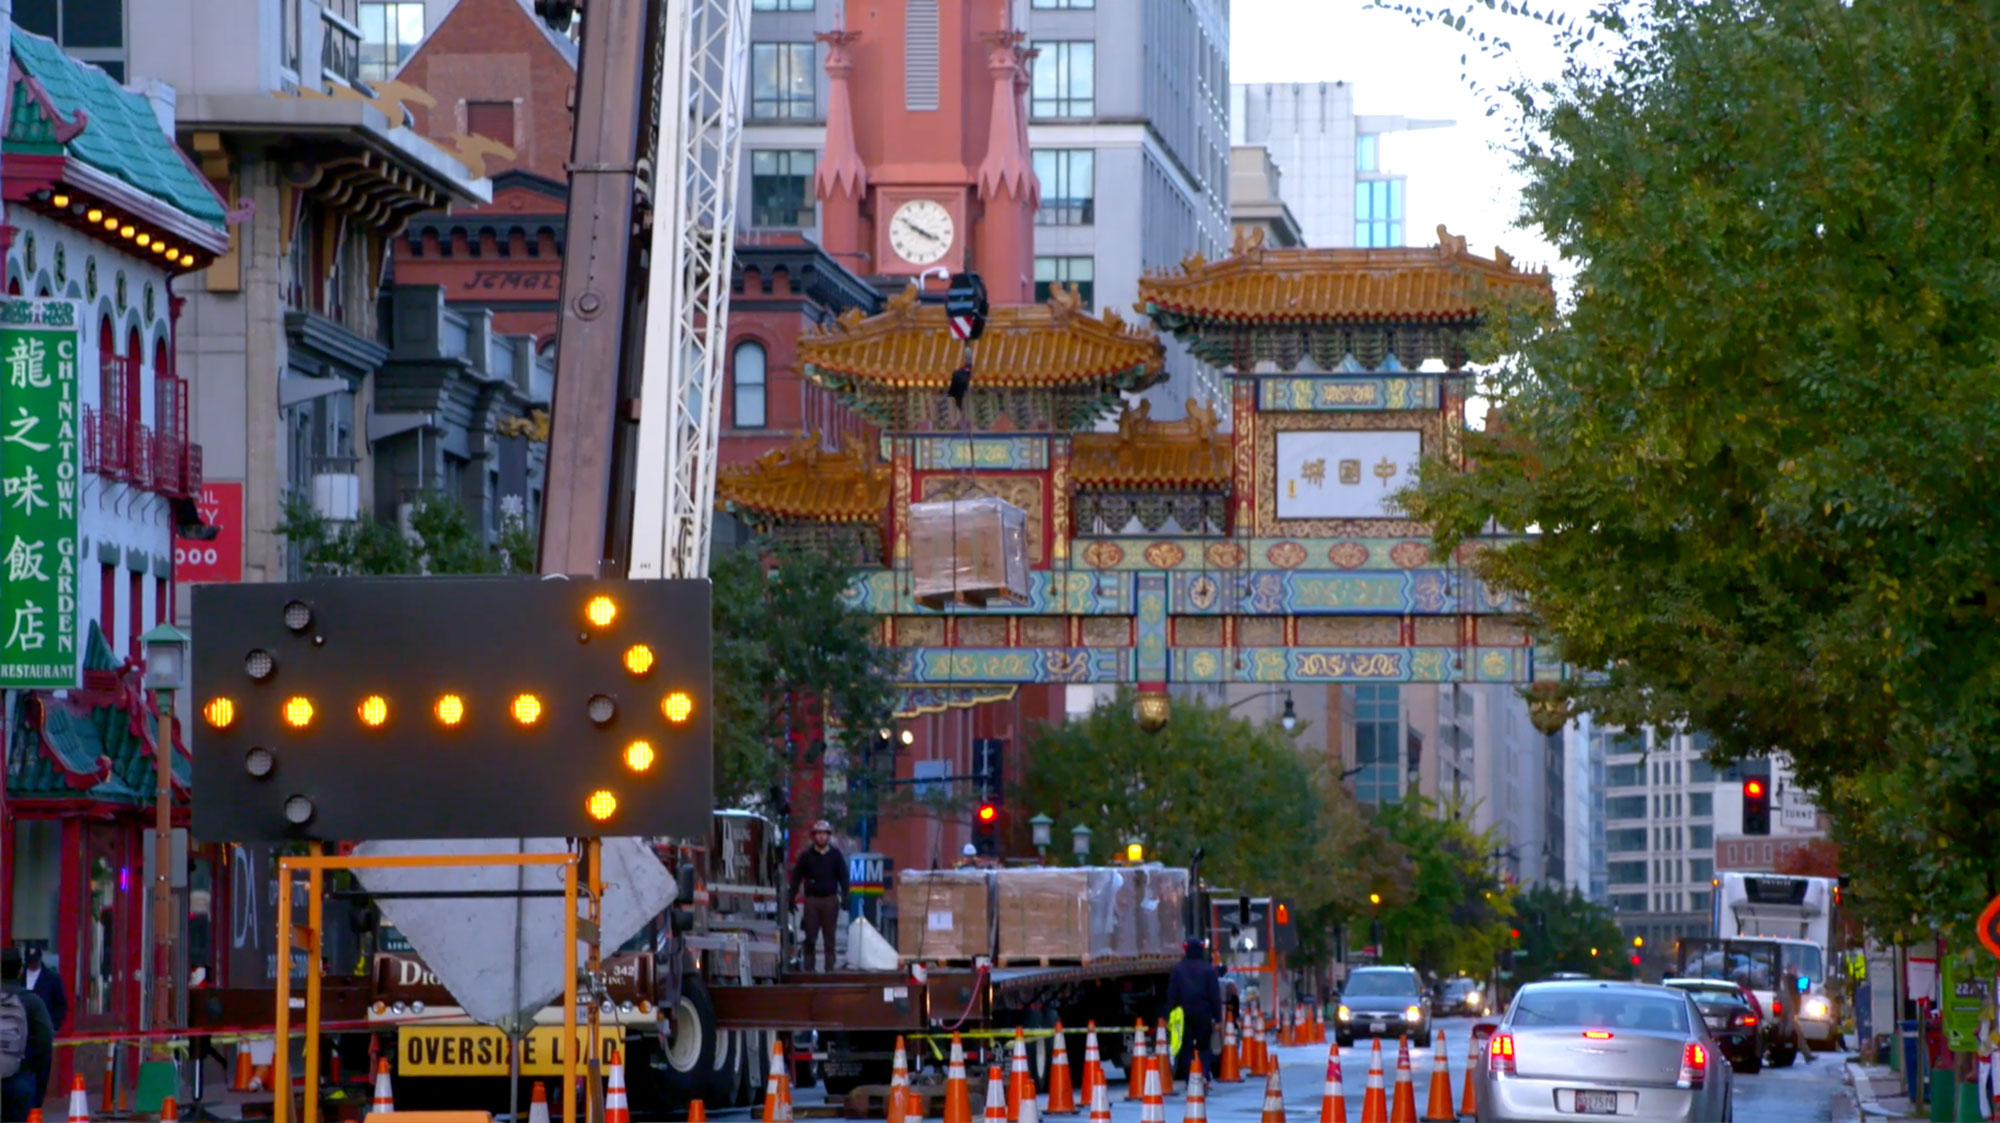 A neon construction arrow sign points right in front of a crane. The sign and crane are outside in front of a Chinatown community gate with many orange cones surrounding the crane. A sign to the left says 'Chinatown Garden Restaurant' and beyond the gate is a clock tower with four conical small towers surrounding the actual clock, and glass-paned buildings are behind the Chinatown community gate. There are cars on the road and trees lining the streets. The sky is bright with no outlines of clouds.